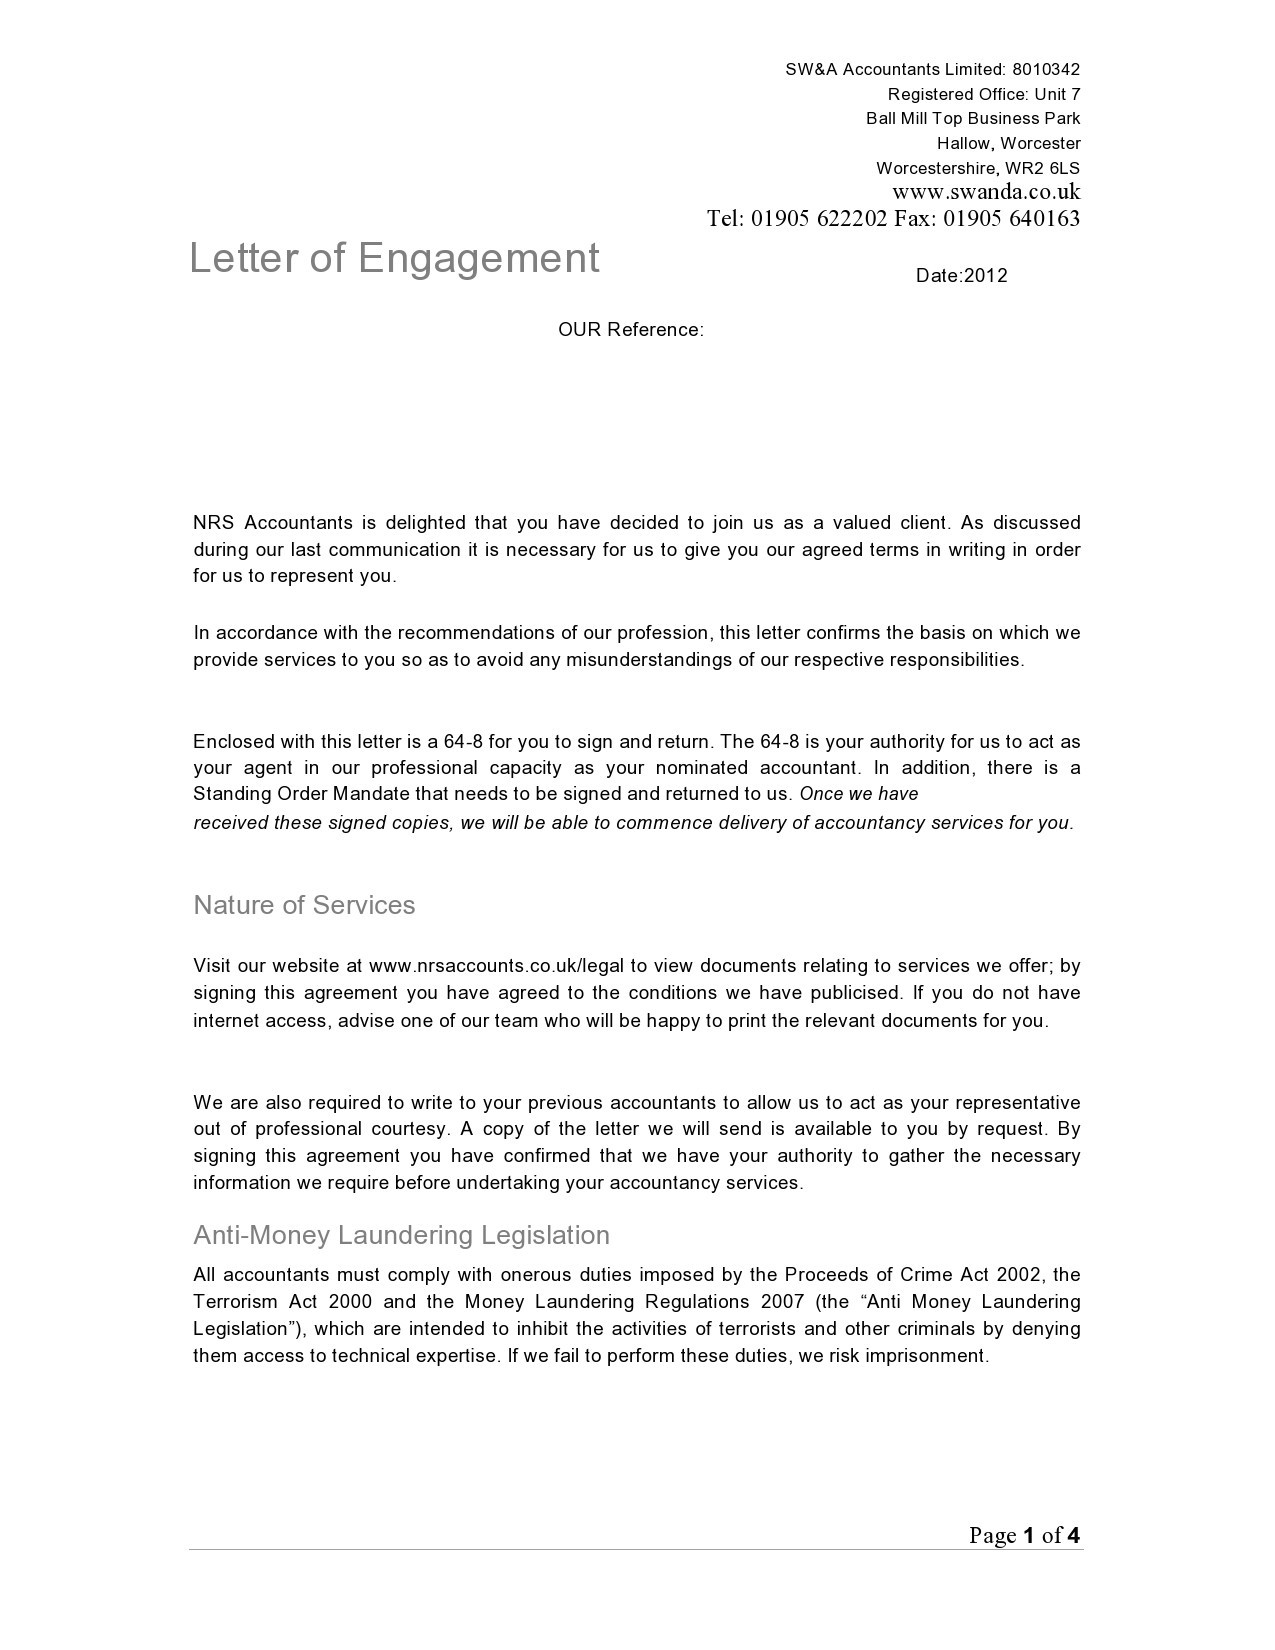 Free engagement letter 50